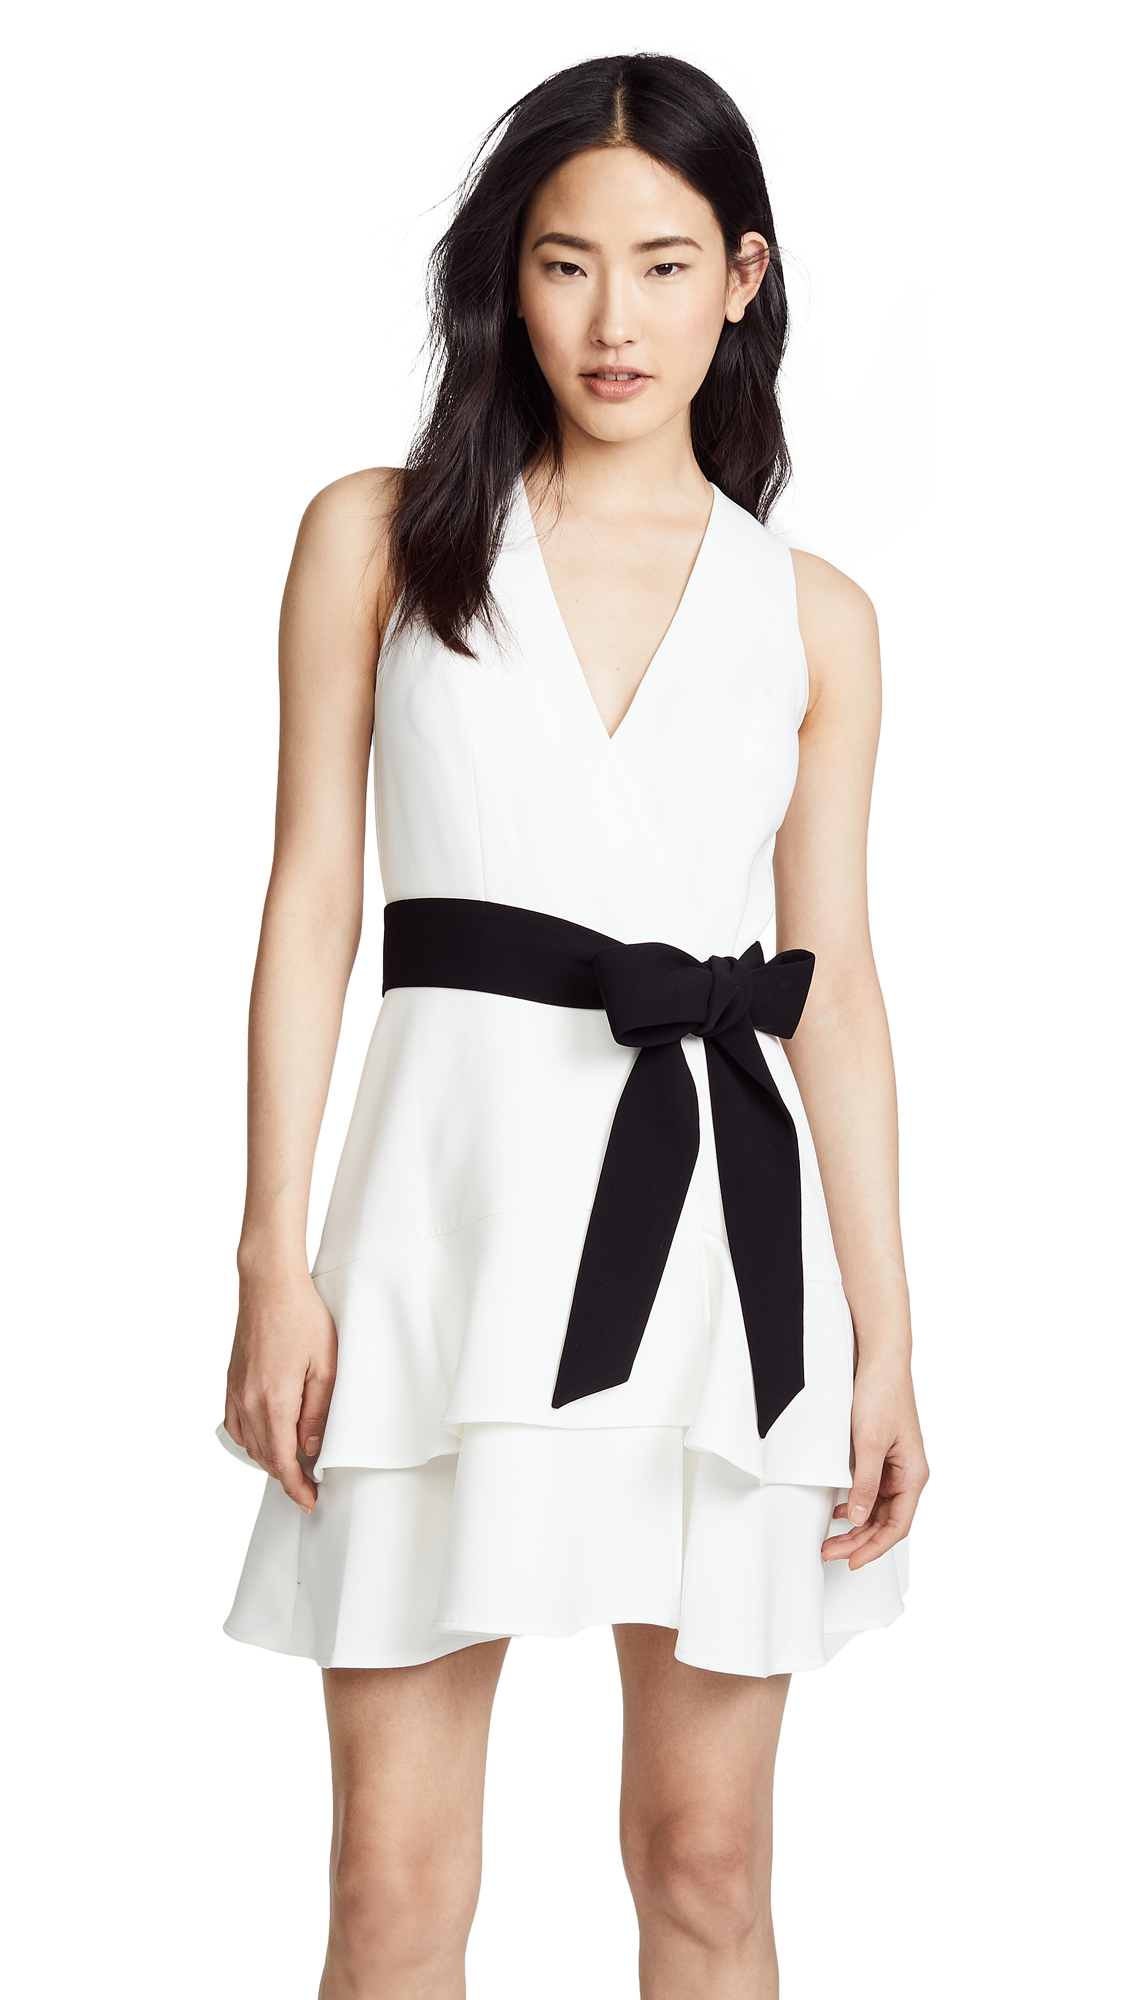 Alexis Olena Dress In Off White